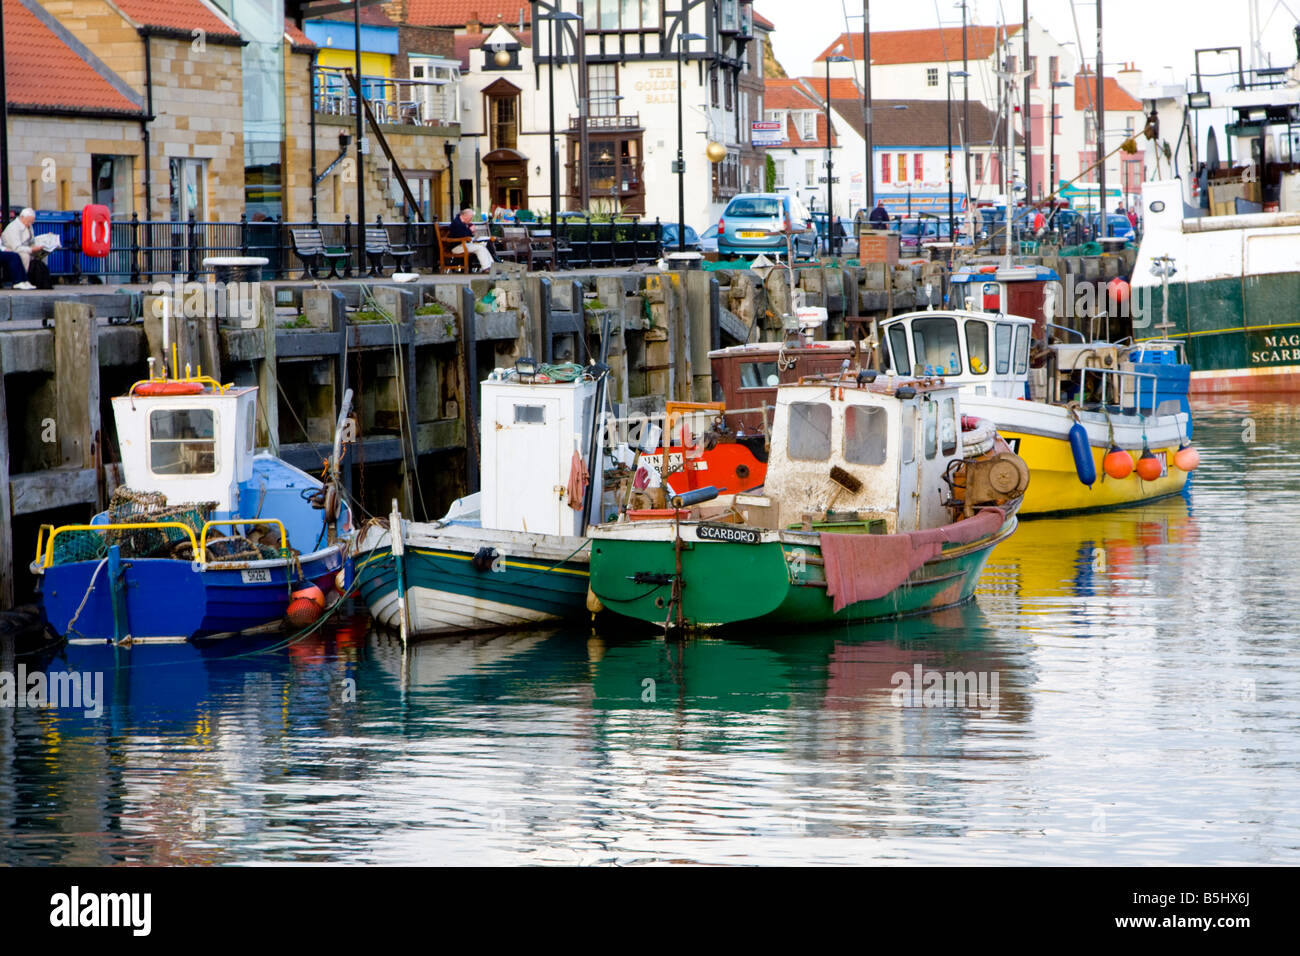 Fishing boats in the harbour Scarborough UK - Stock Image